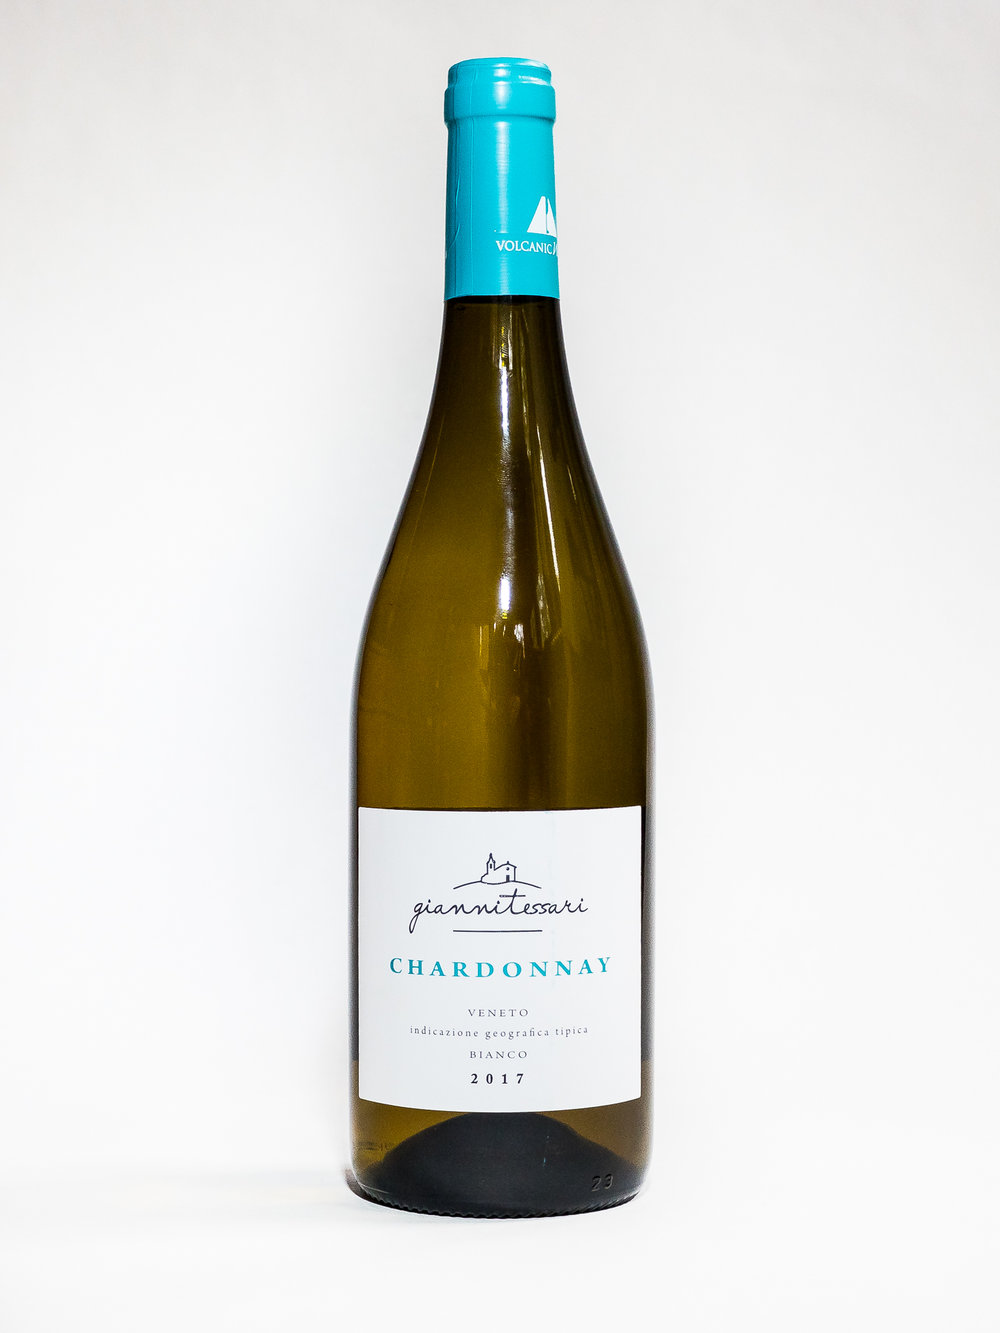 Chardonnay 2017    Producer :  Giannitessari    Region:  Roncà, Veneto  Grapes:  Chardonnay  Characteristics:  Straw yellow color. Delicate aroma of tropical fruit with well balanced acidity and rich mineral quality. Pairs well with light dishes and fish.